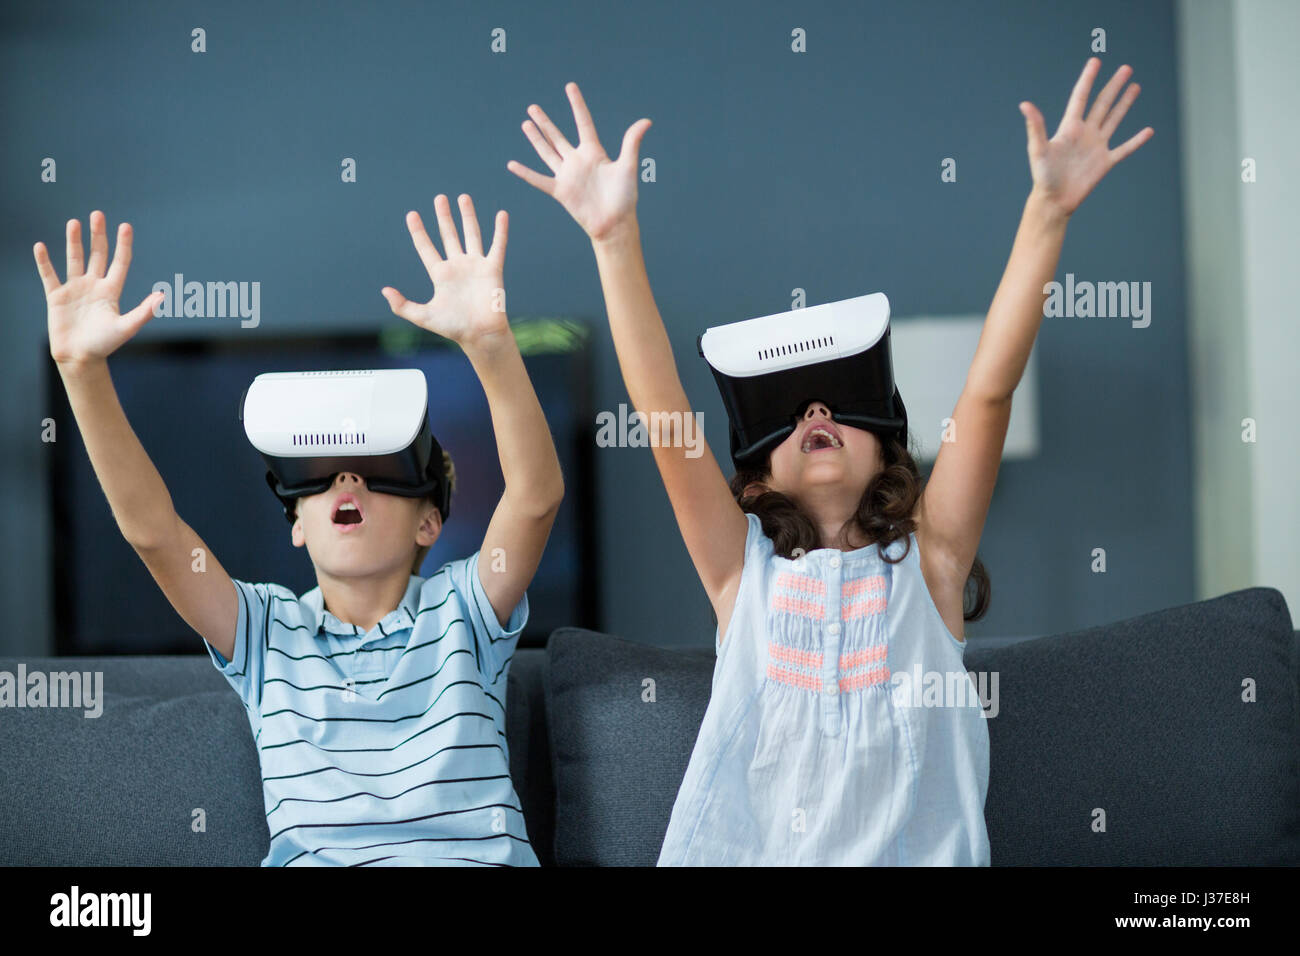 Siblings using virtual reality headset in living room at home - Stock Image